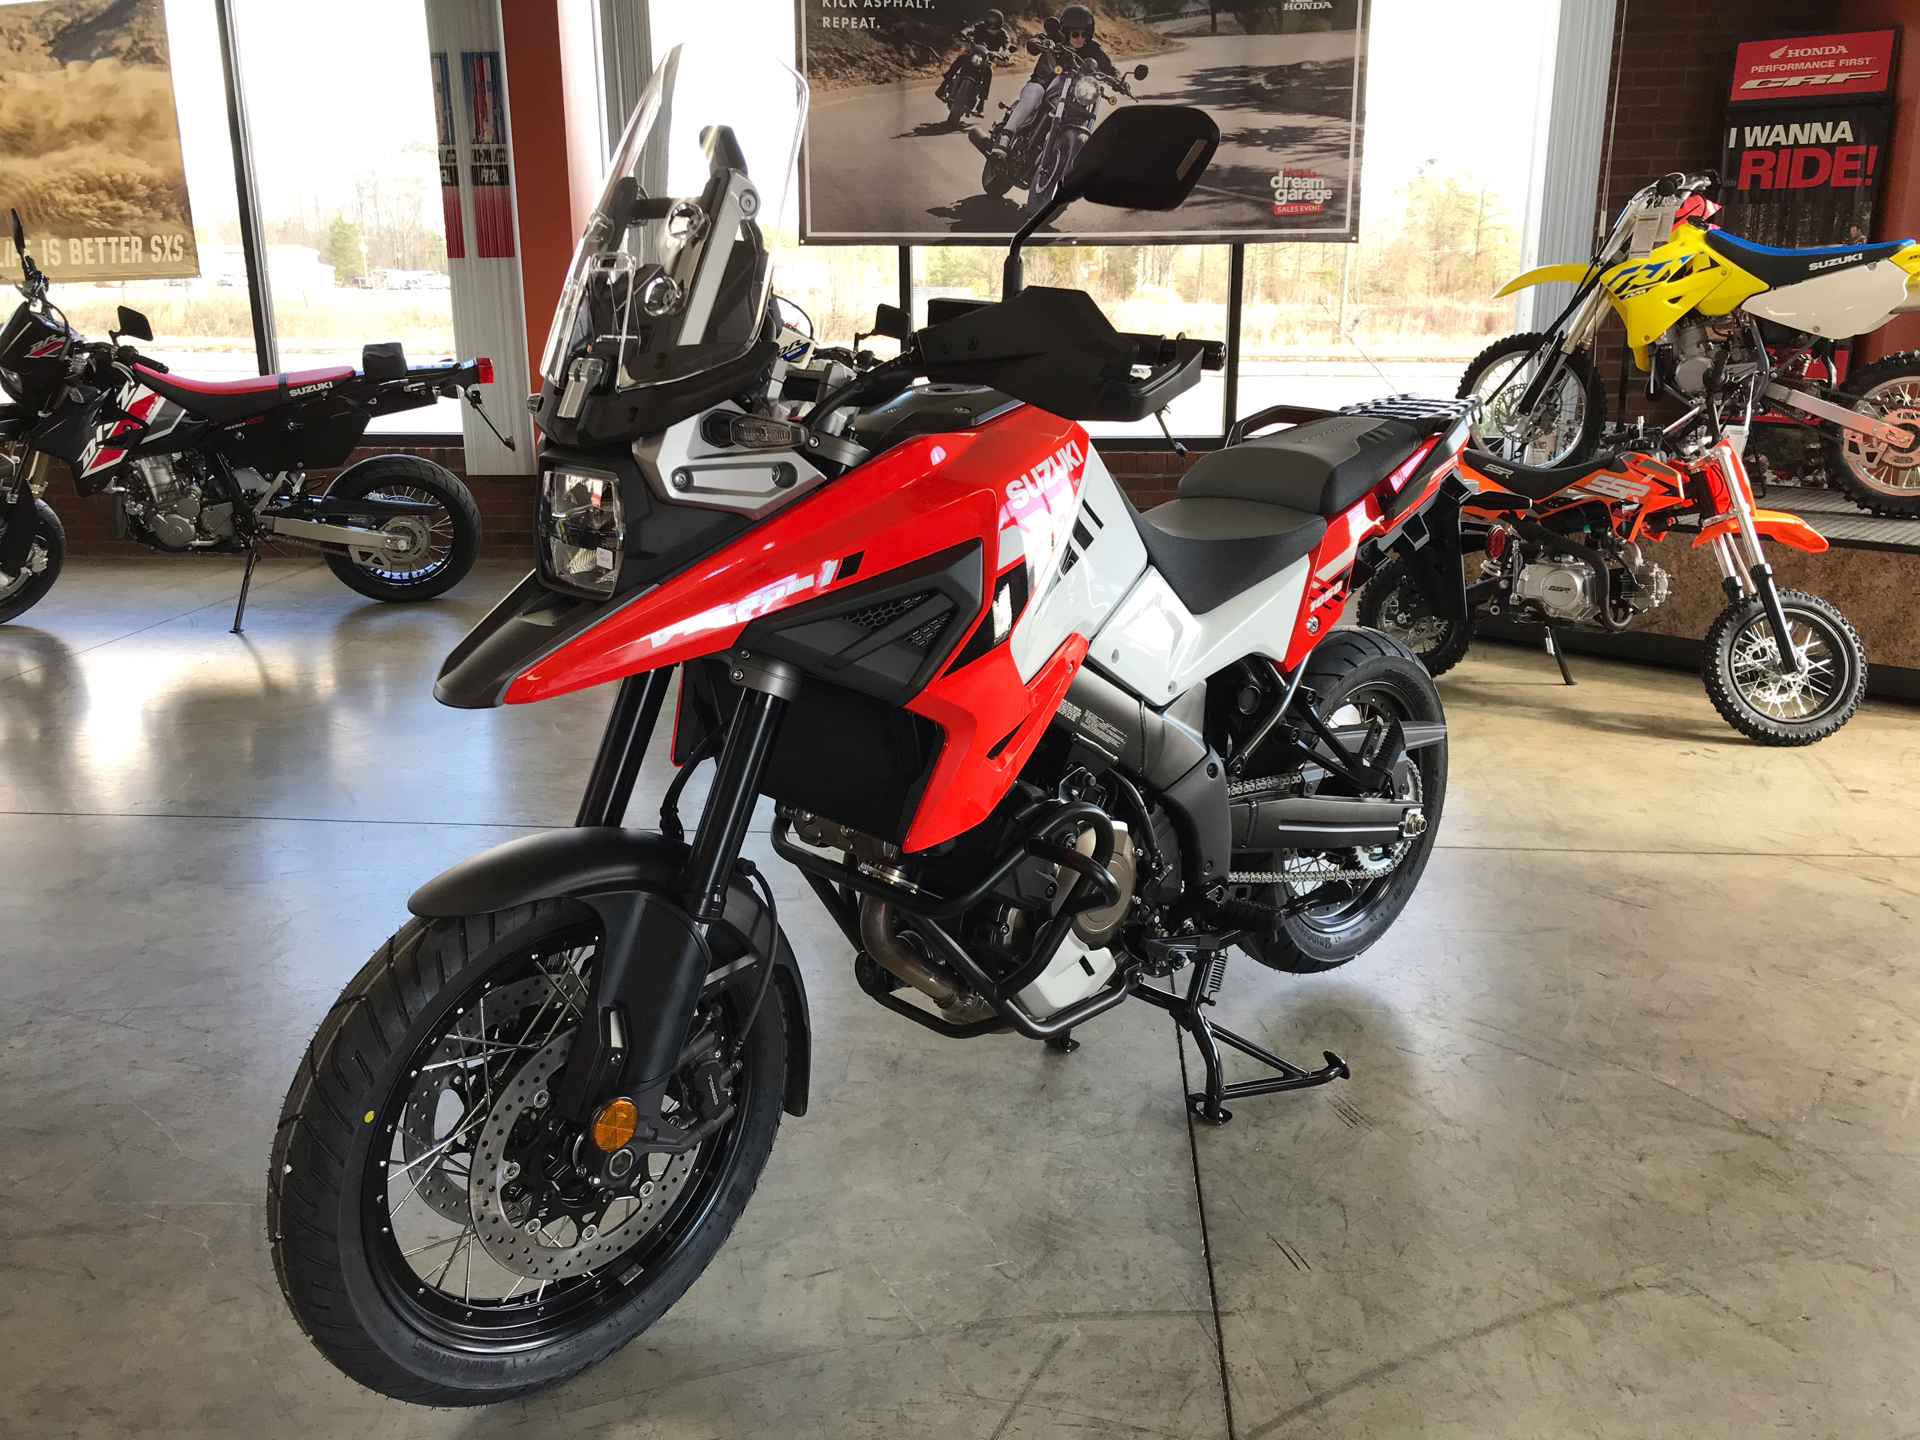 2020 Suzuki V-Strom 1050XT in Sanford, North Carolina - Photo 4